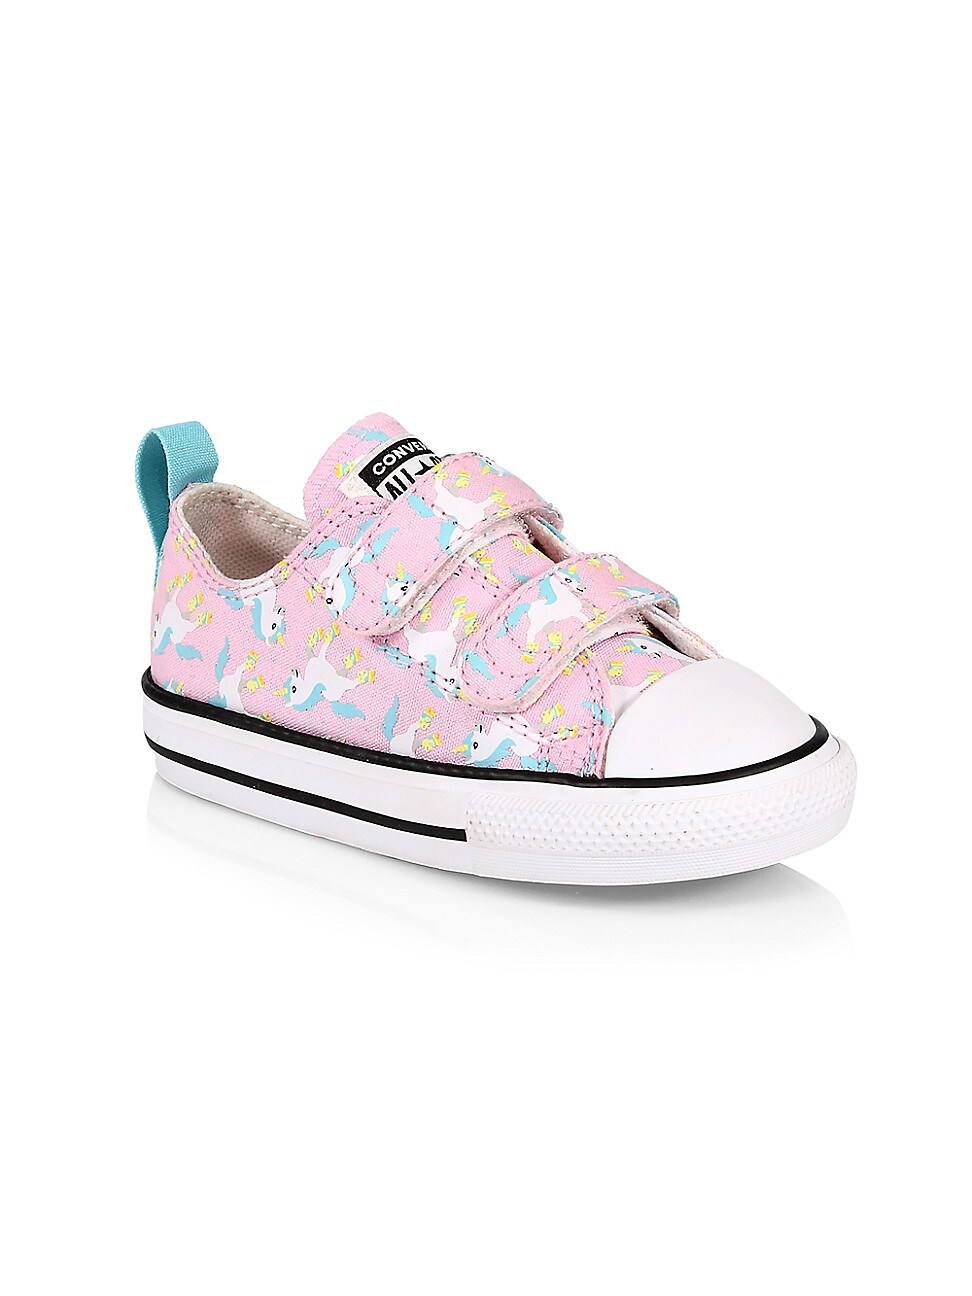 CONVERSE BABY'S & LITTLE GIRL'S PRINTED CHUCK TAYLOR ALL STAR SNEAKERS